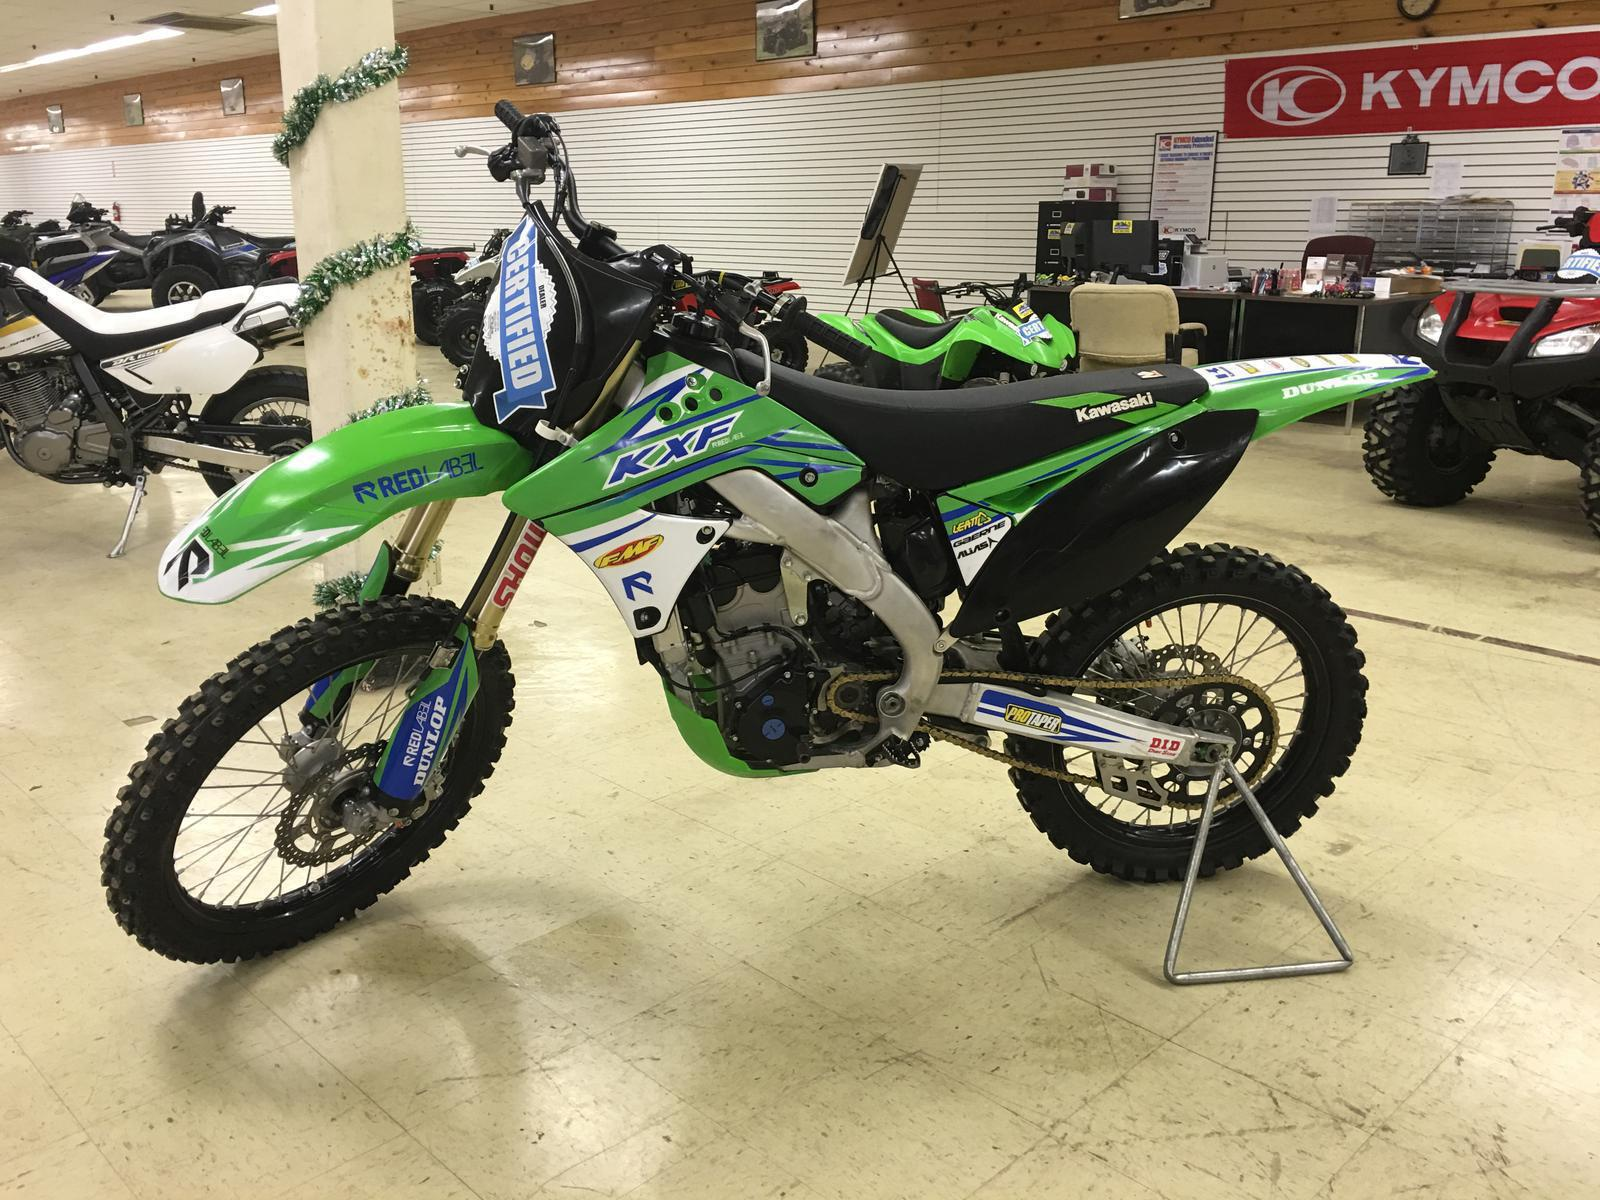 IMG_2418?v=1488898975873 2012 kawasaki kx™ 250f for sale in bluefield, wv planet  at readyjetset.co